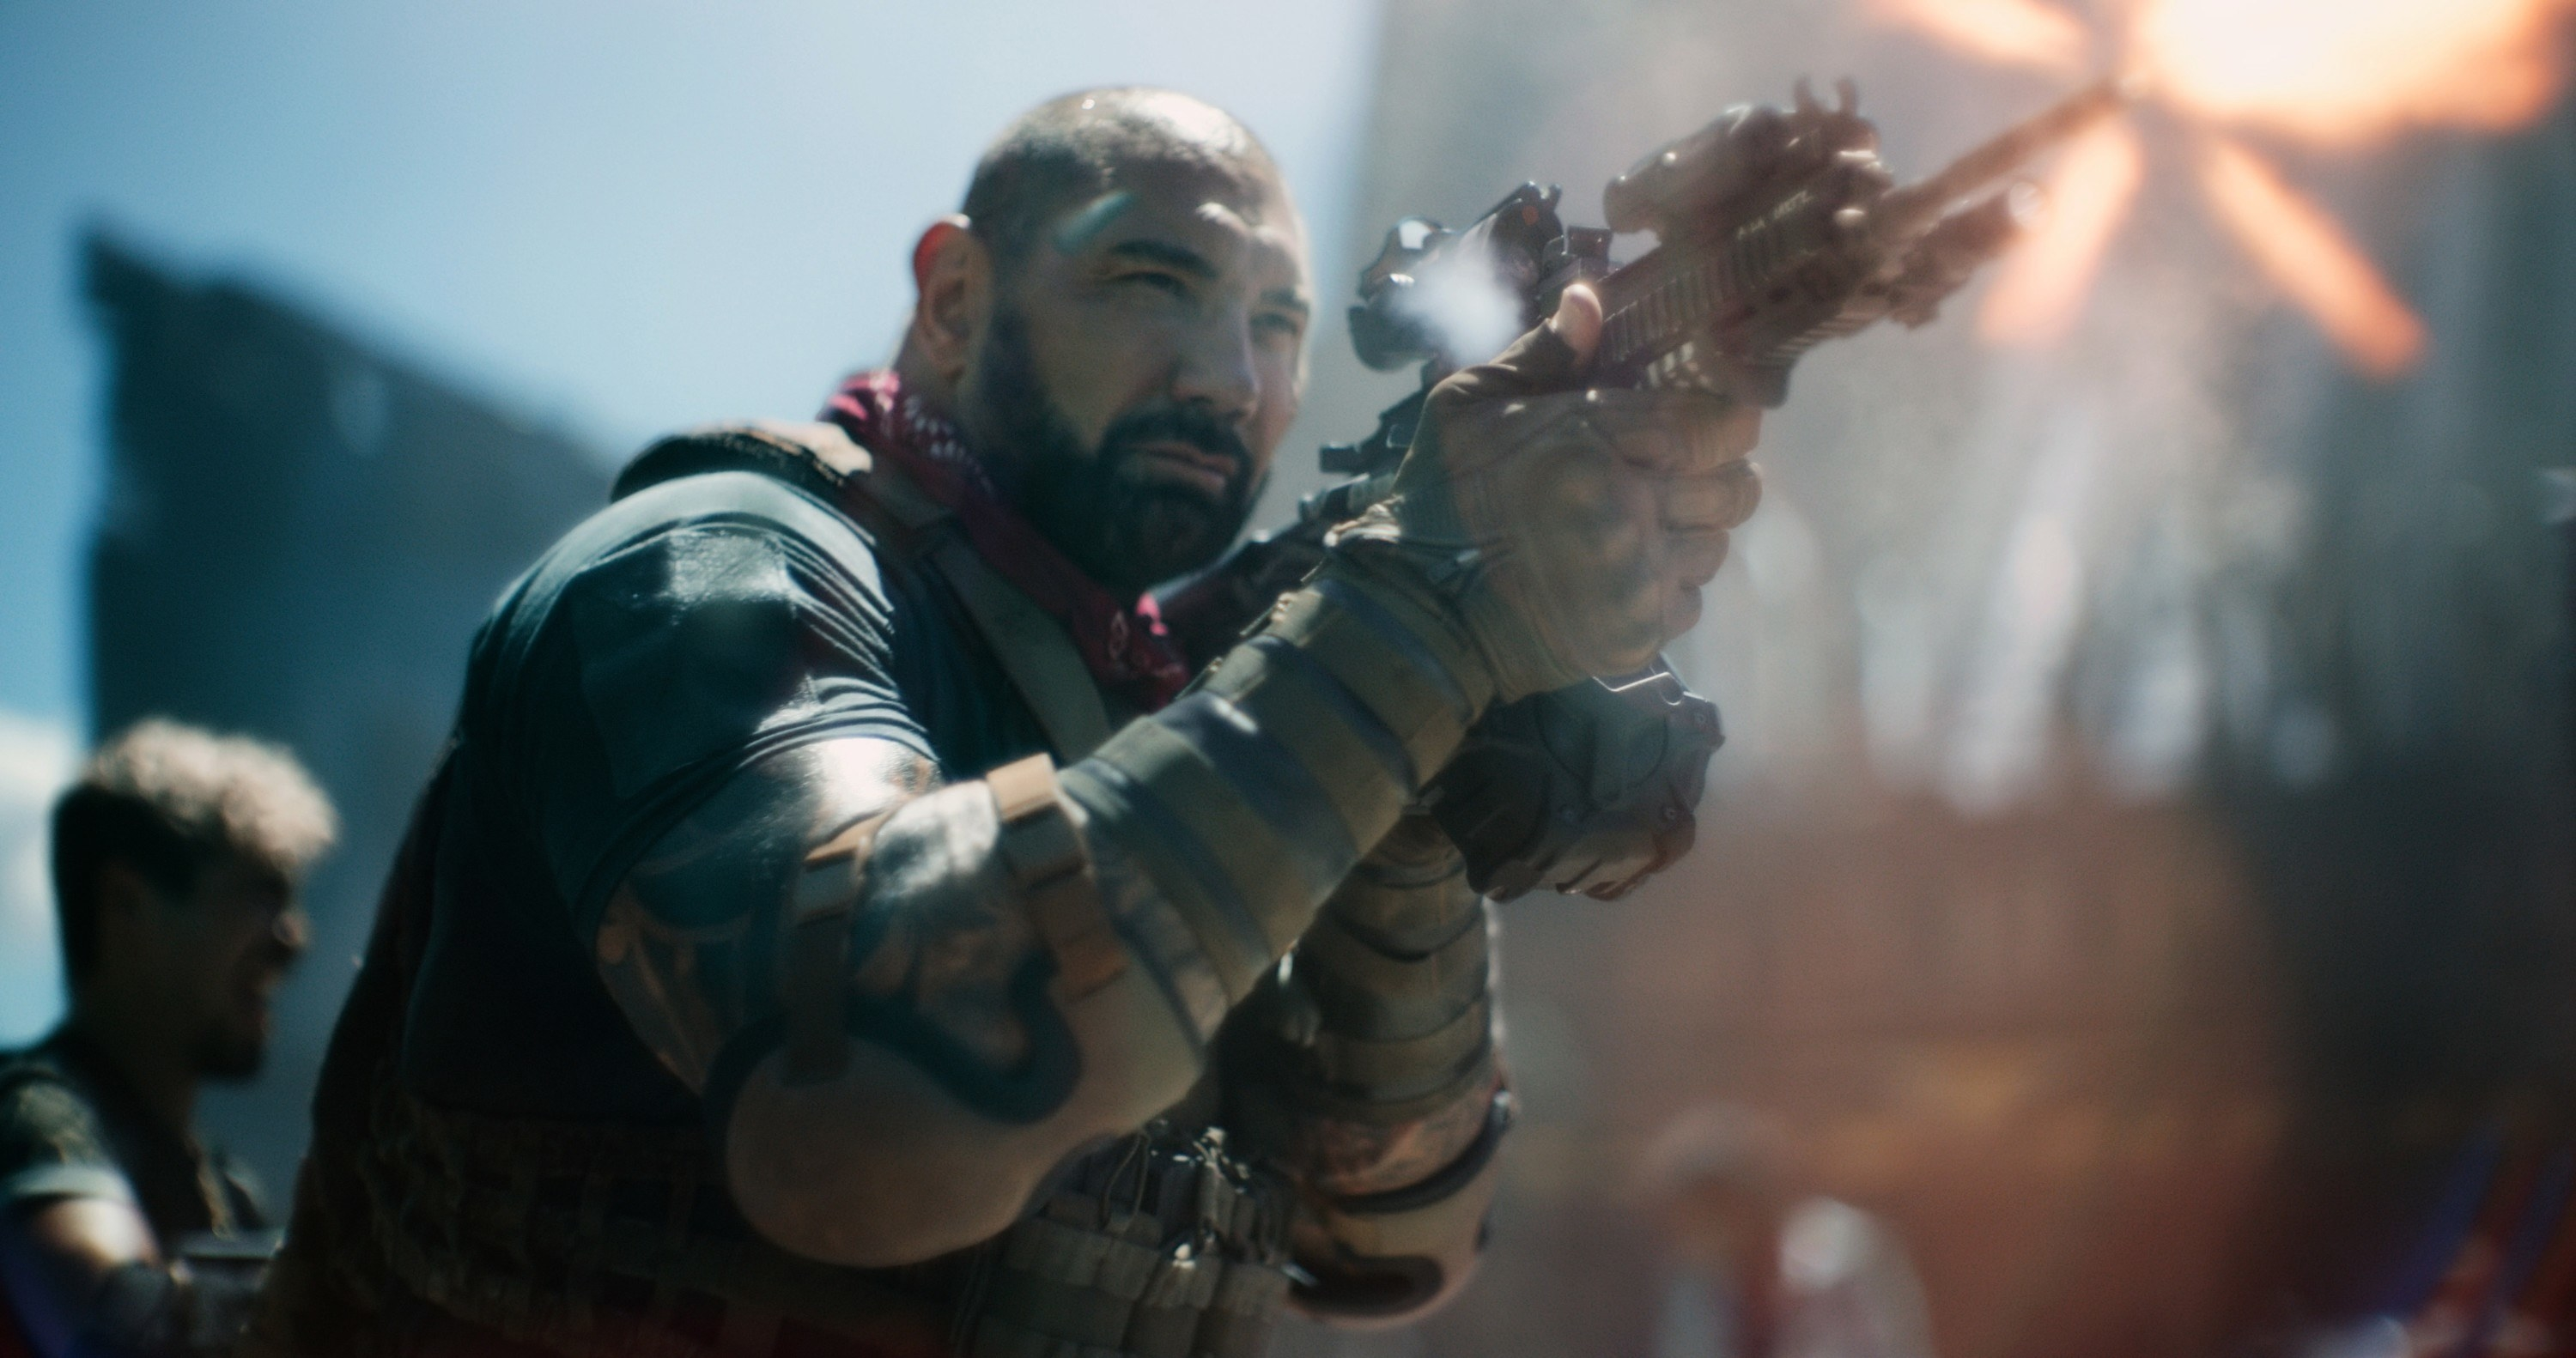 Dave Bautista shooting a gun in a scene from army of the dead